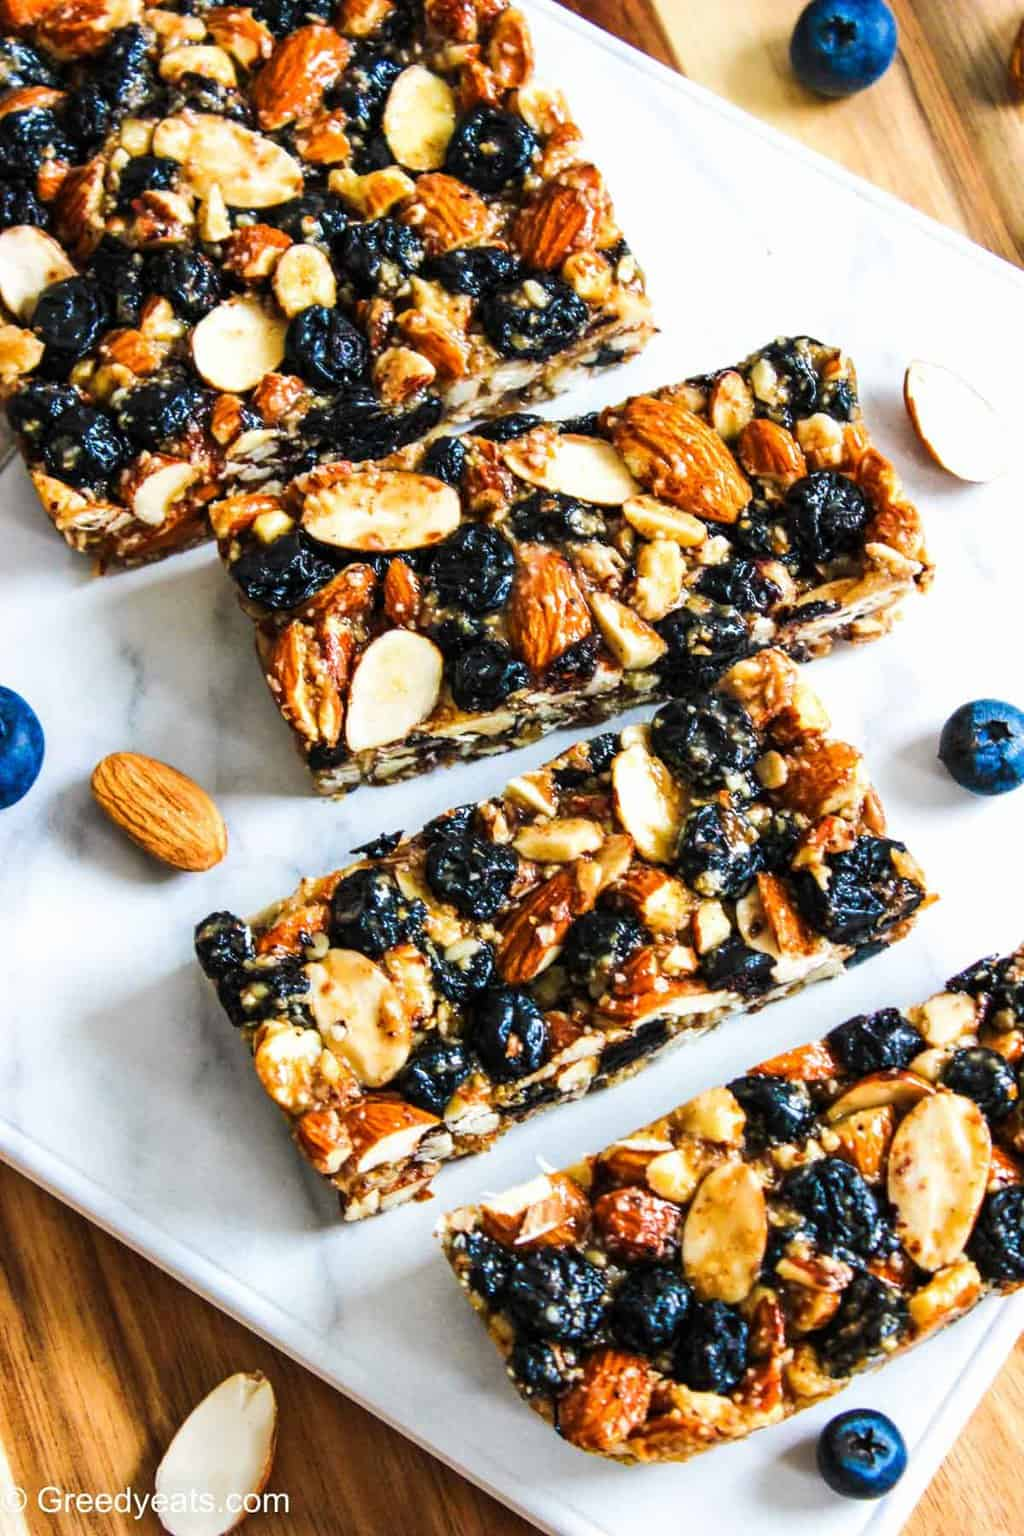 Chewy Almond Bars recipe made with all good for you ingredients. Recipe on Greedy Eats.